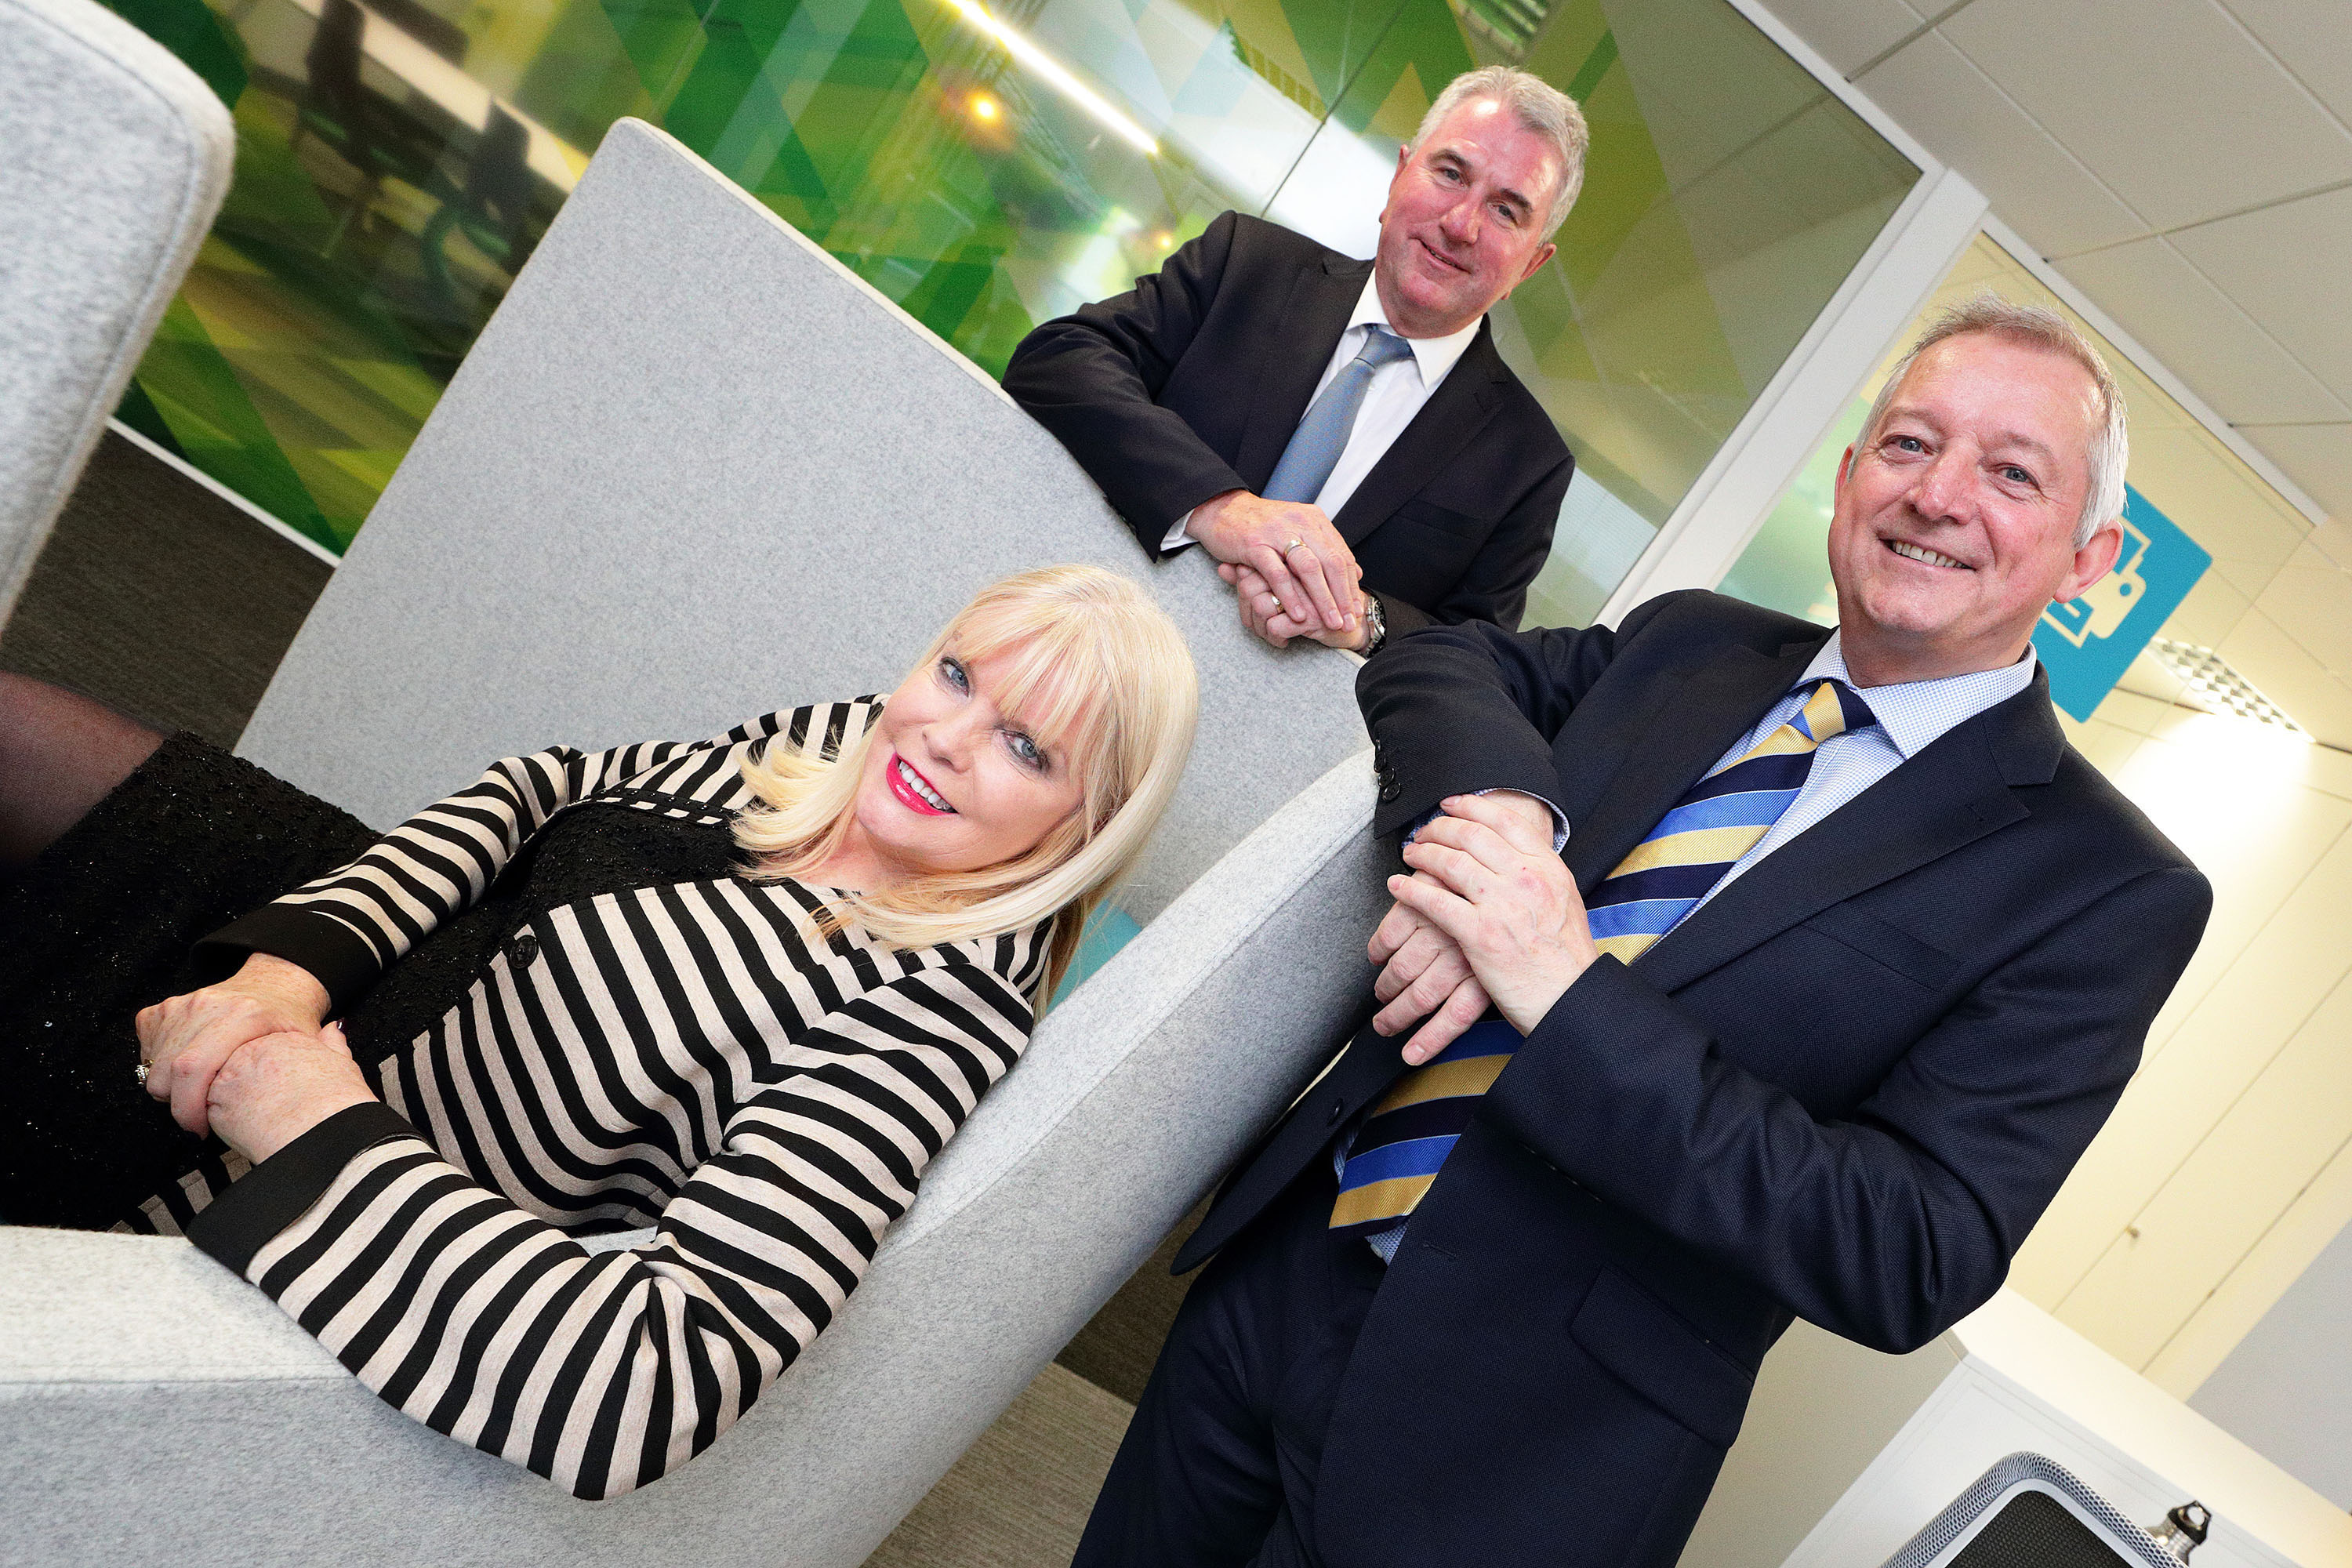 (4)	Pictured at the opening of Ricoh's new Irish headquarters in Airside Business Park, Swords, Co. Dublin are (L to R) Minister for Jobs, Enterprise & Innovation, Mary Mitchell O'Connor TD; Phil Keoghan, CEO, Ricoh UK and Ireland; and Gary Hopwood, General Manager, Ricoh Ireland